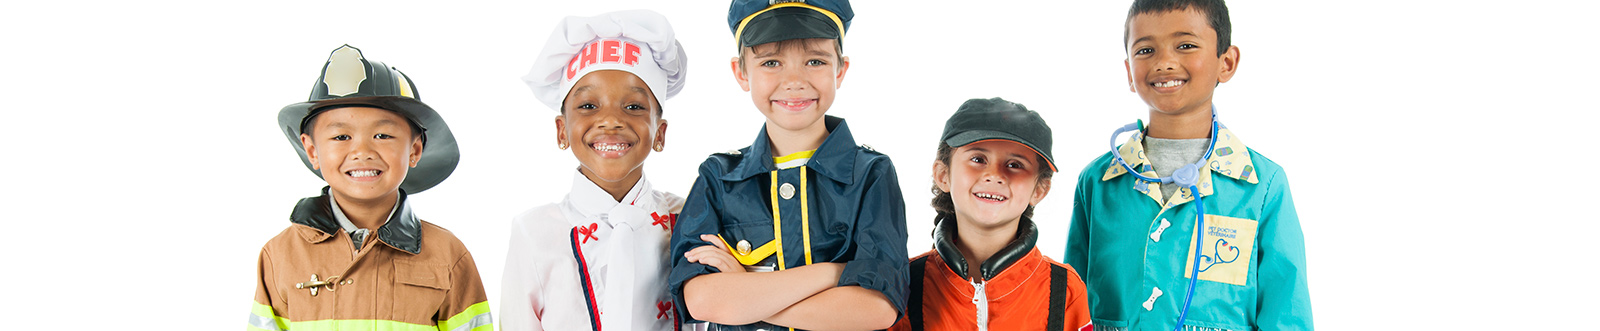 Smiling children in career themed costumes